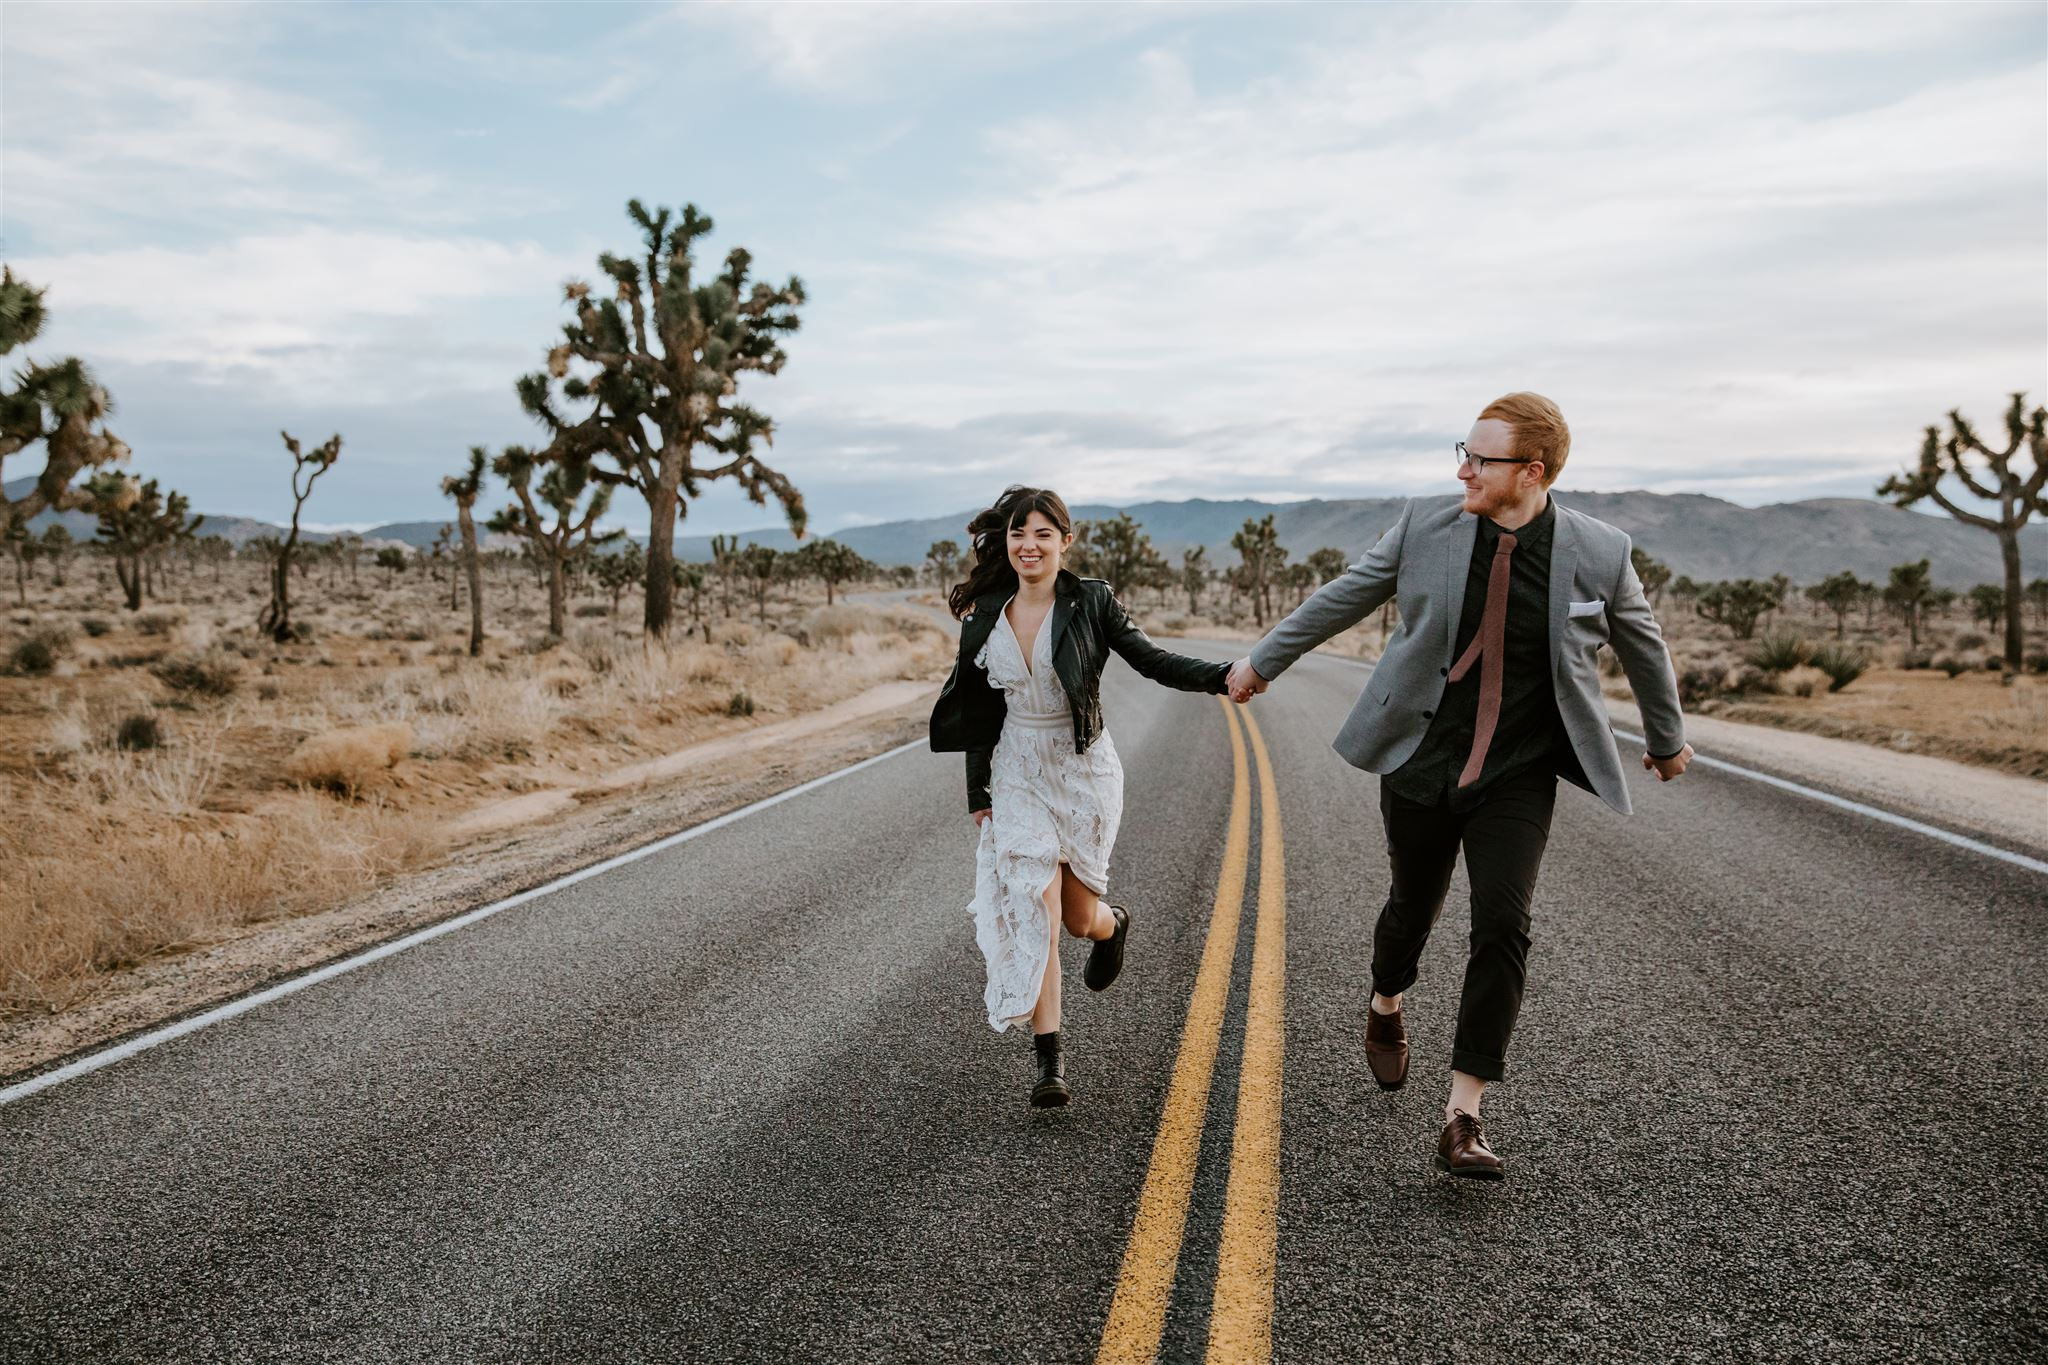 Joshua Tree CA Elopement Wedding  Photographer May Iosotaluno 26.jpg